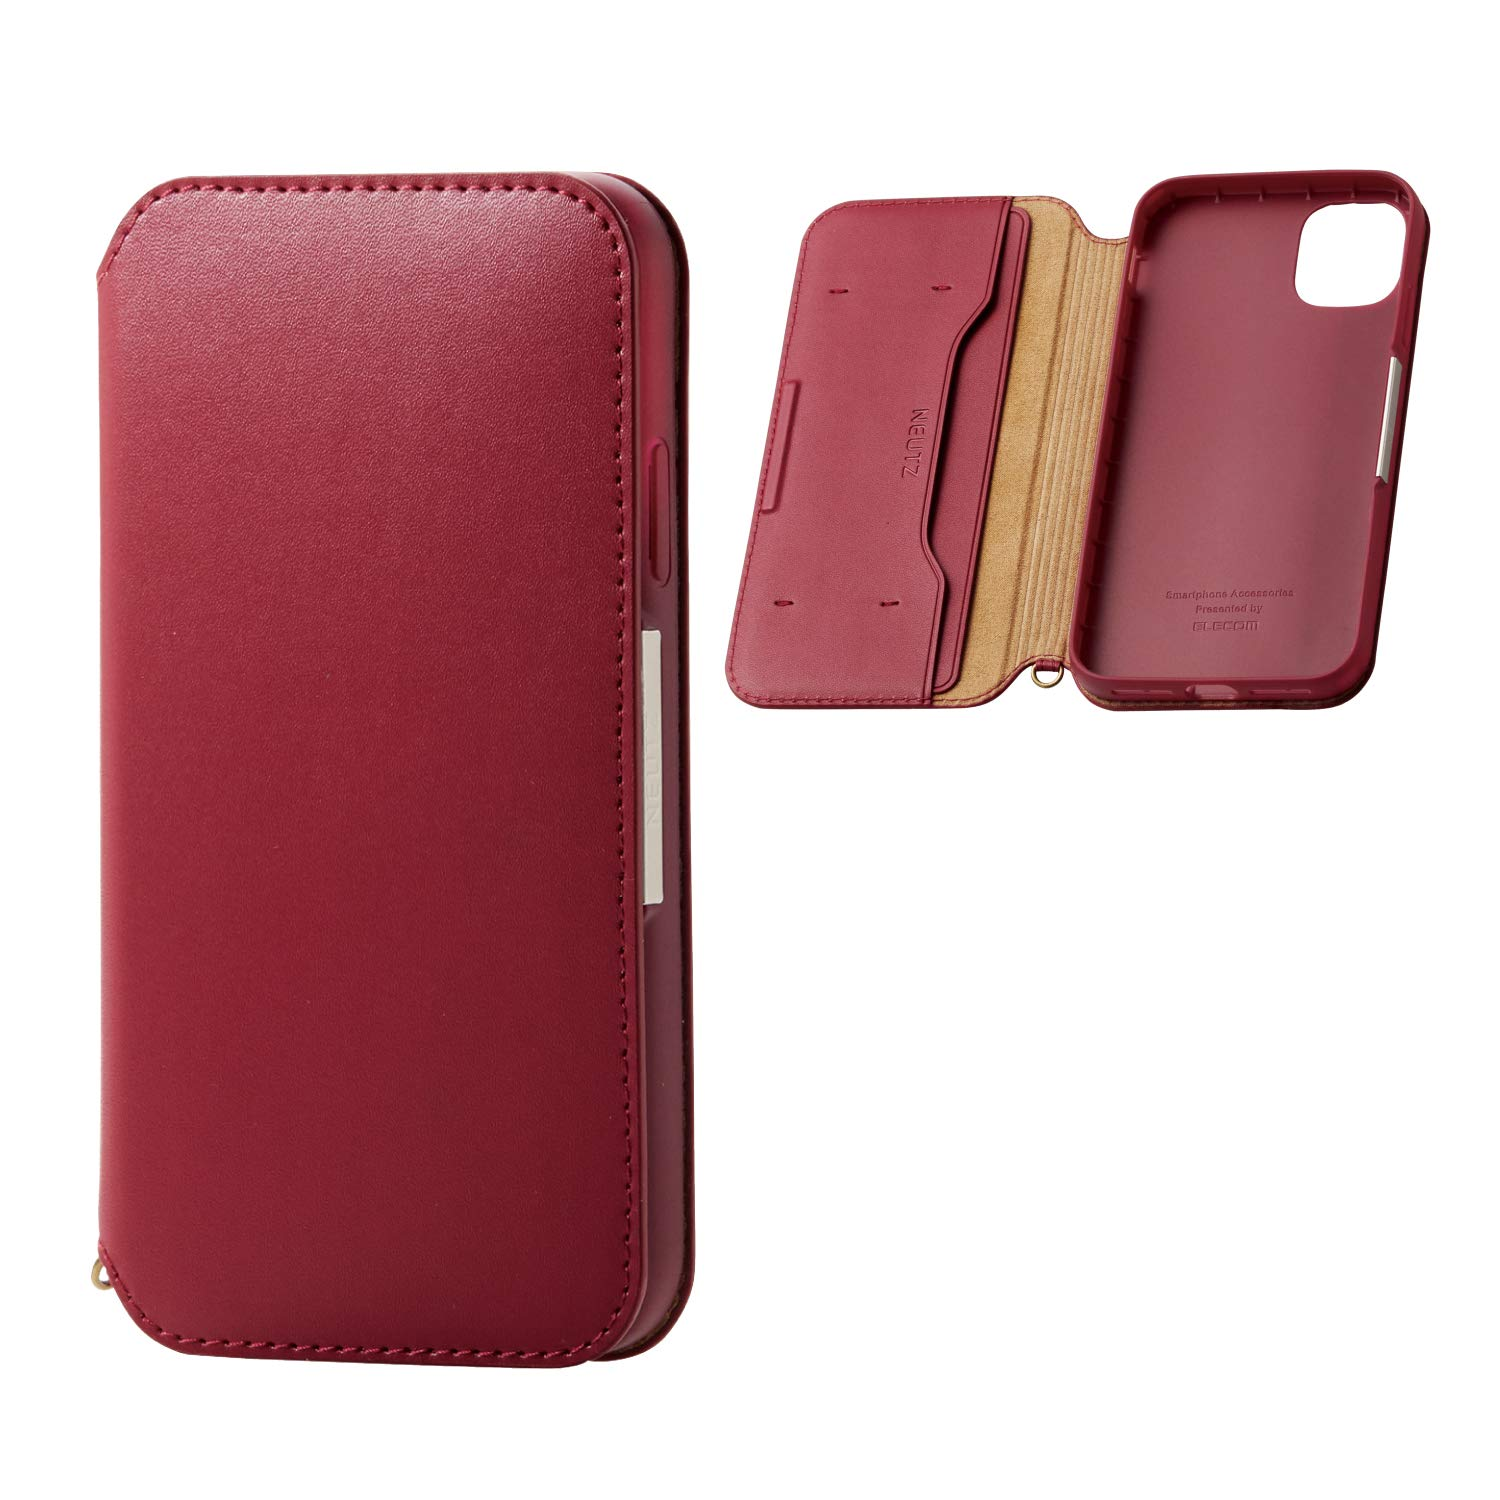 ELECOM-Japan Brand- Smartphone PU Leather Case Magnetic Type/Compatible with iPhone 11/ Red/PM-A19CPLFY2RD